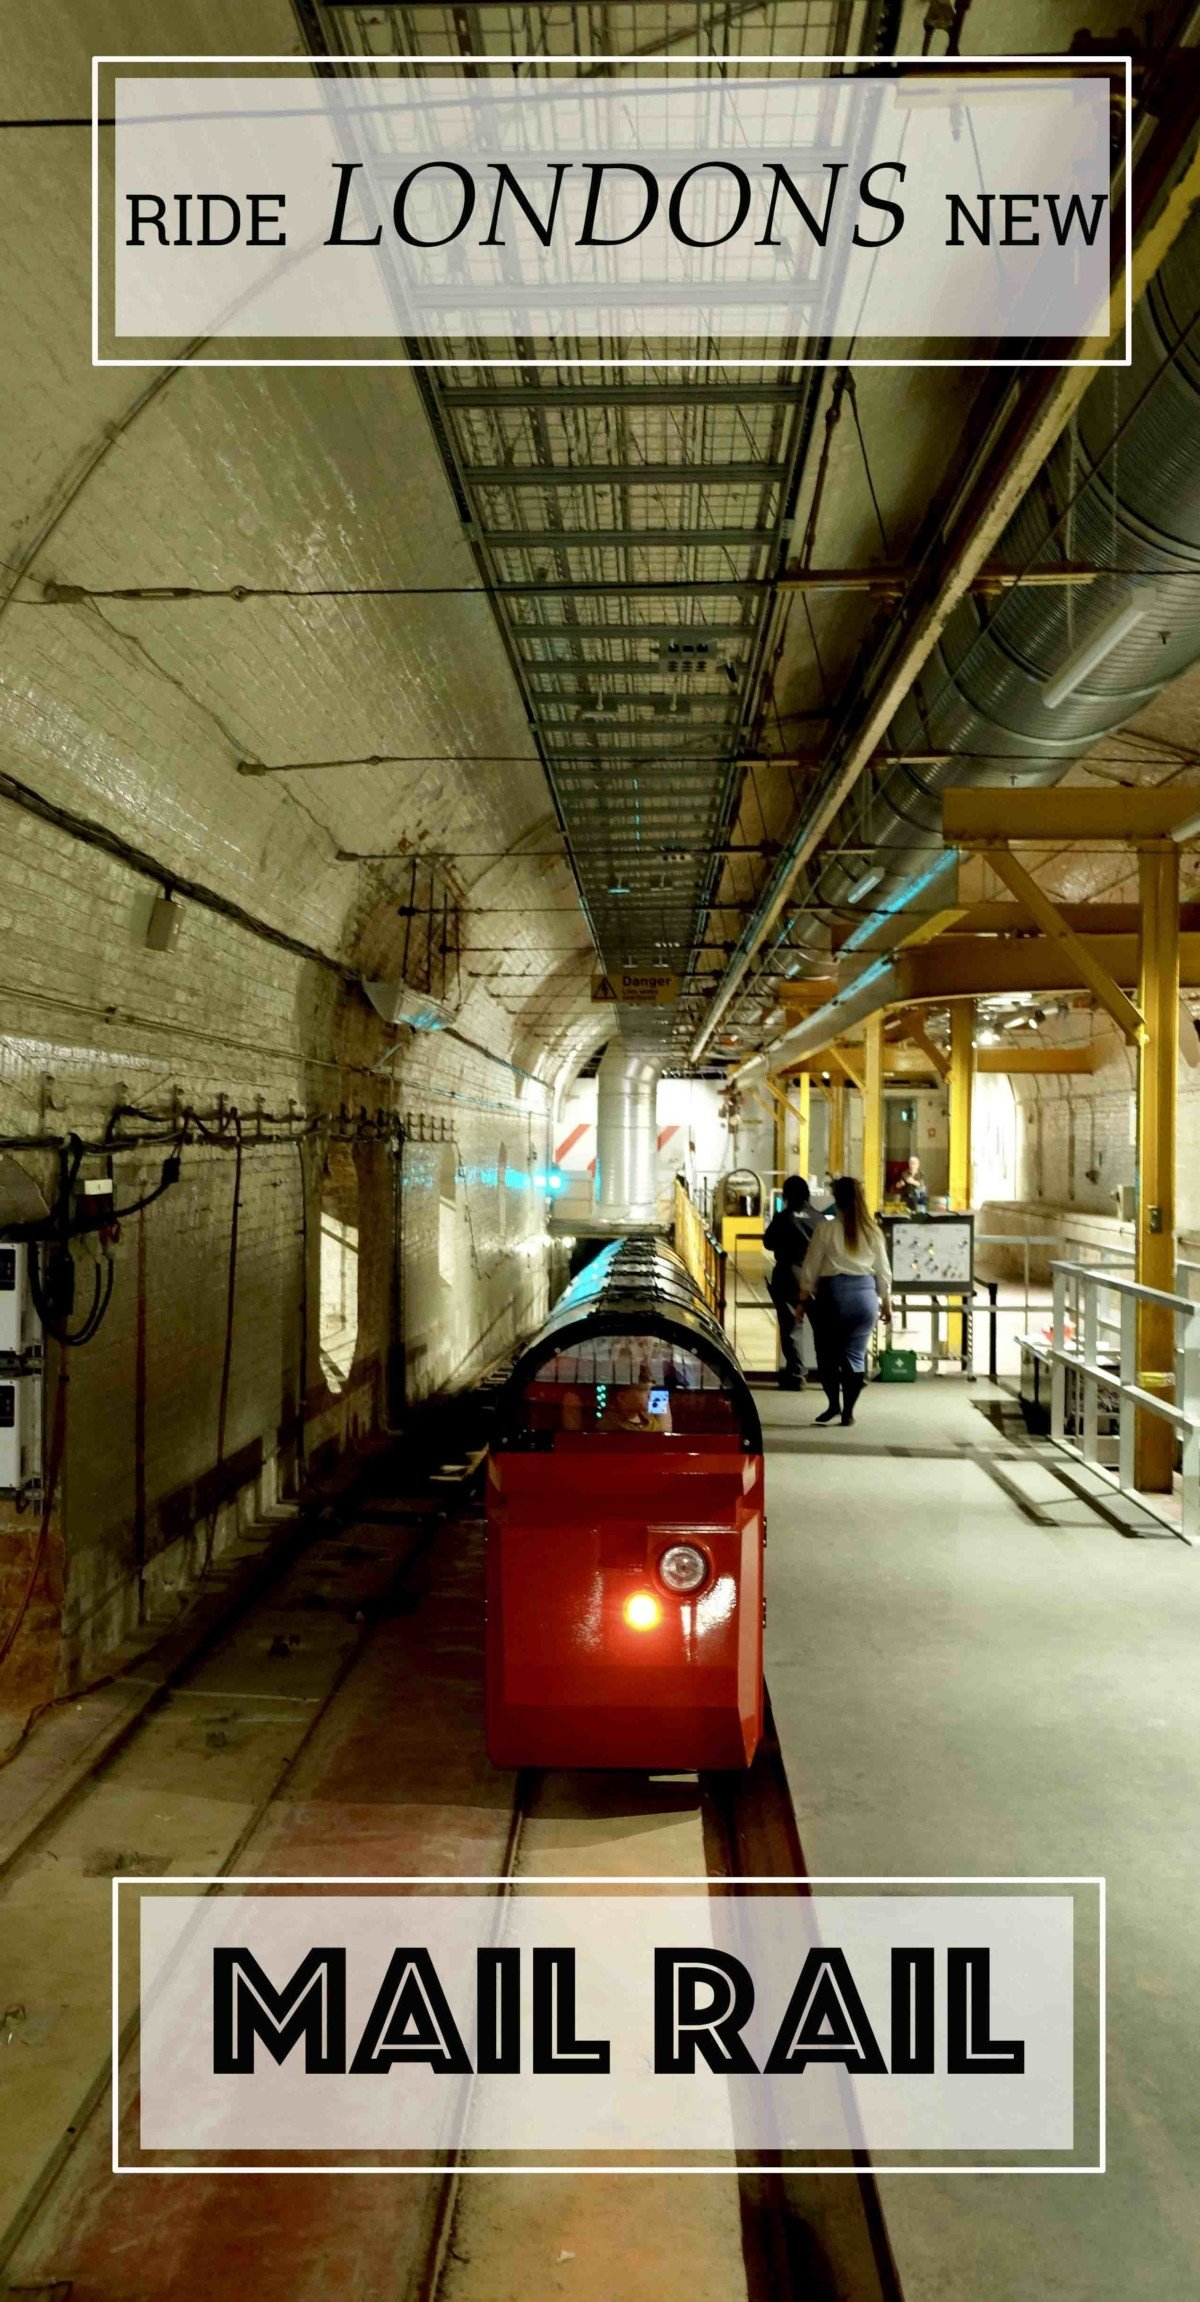 Ride The Mail Rail The Post Offices Railway and Museum